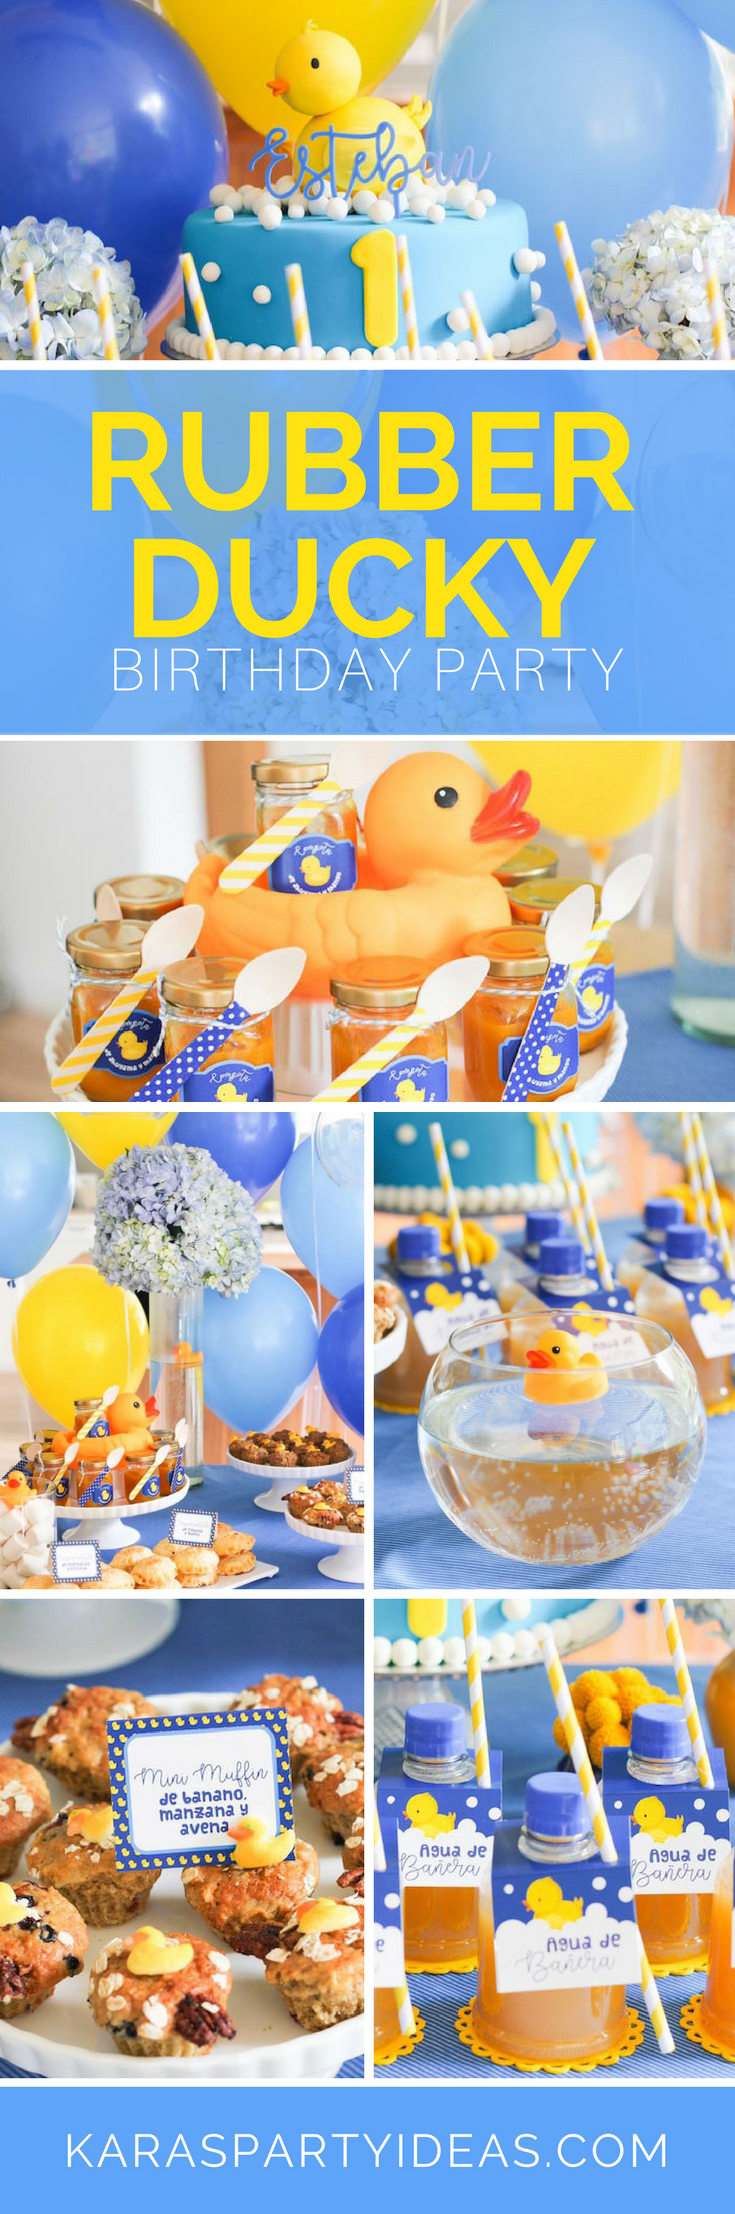 Rubber Ducky Birthday Party via Kara's Party Ideas - KarasPartyIdeas.com